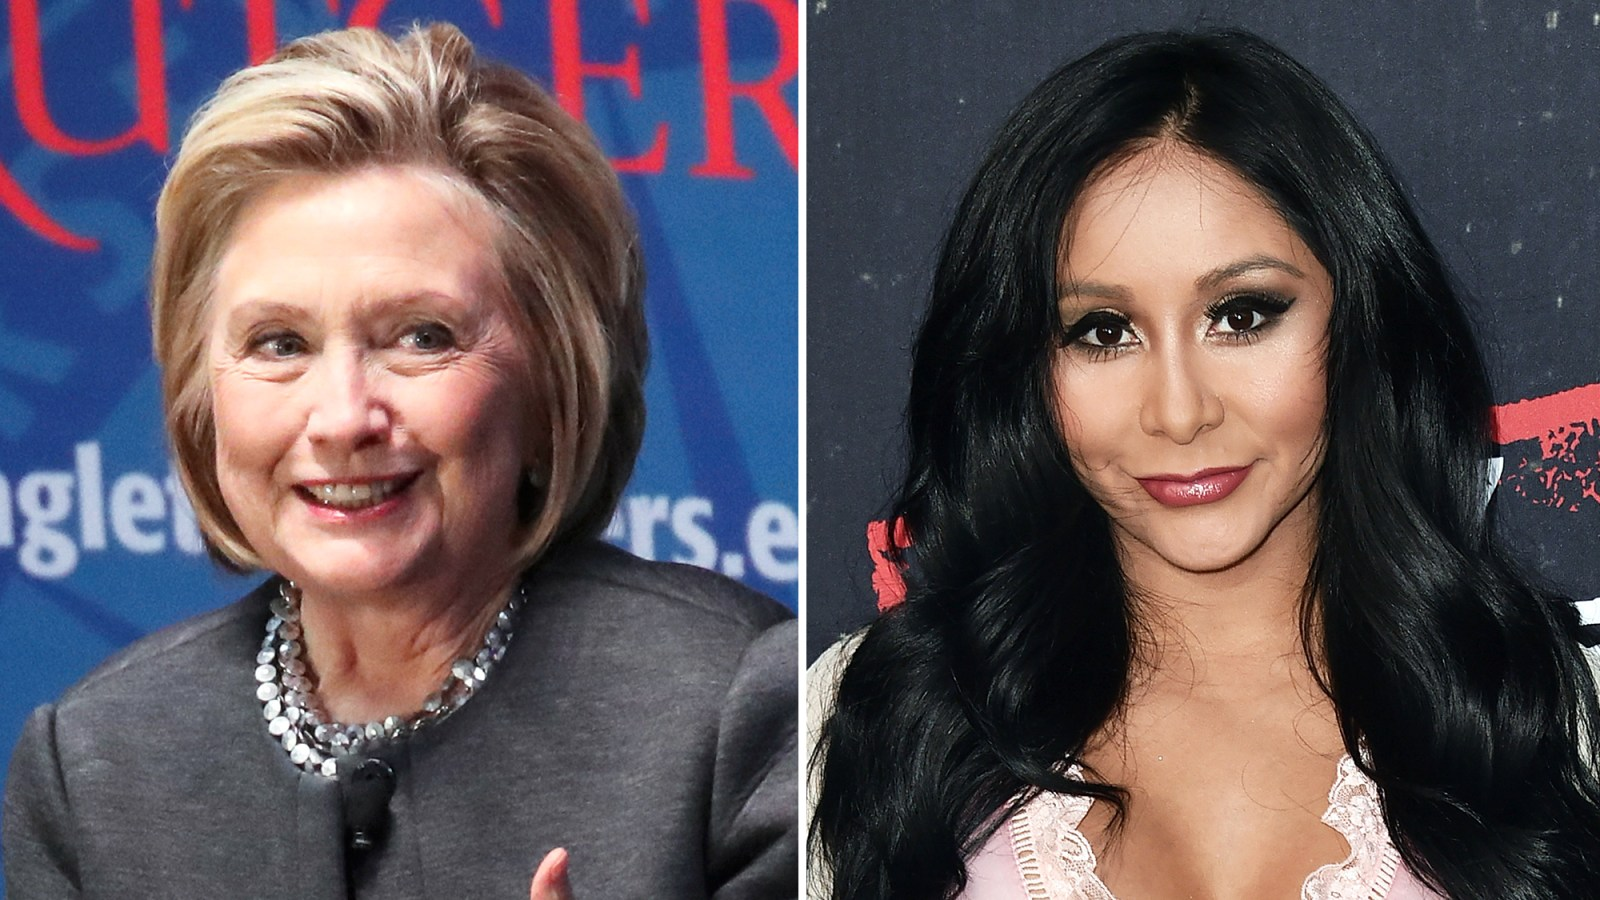 Snooki Then And Now